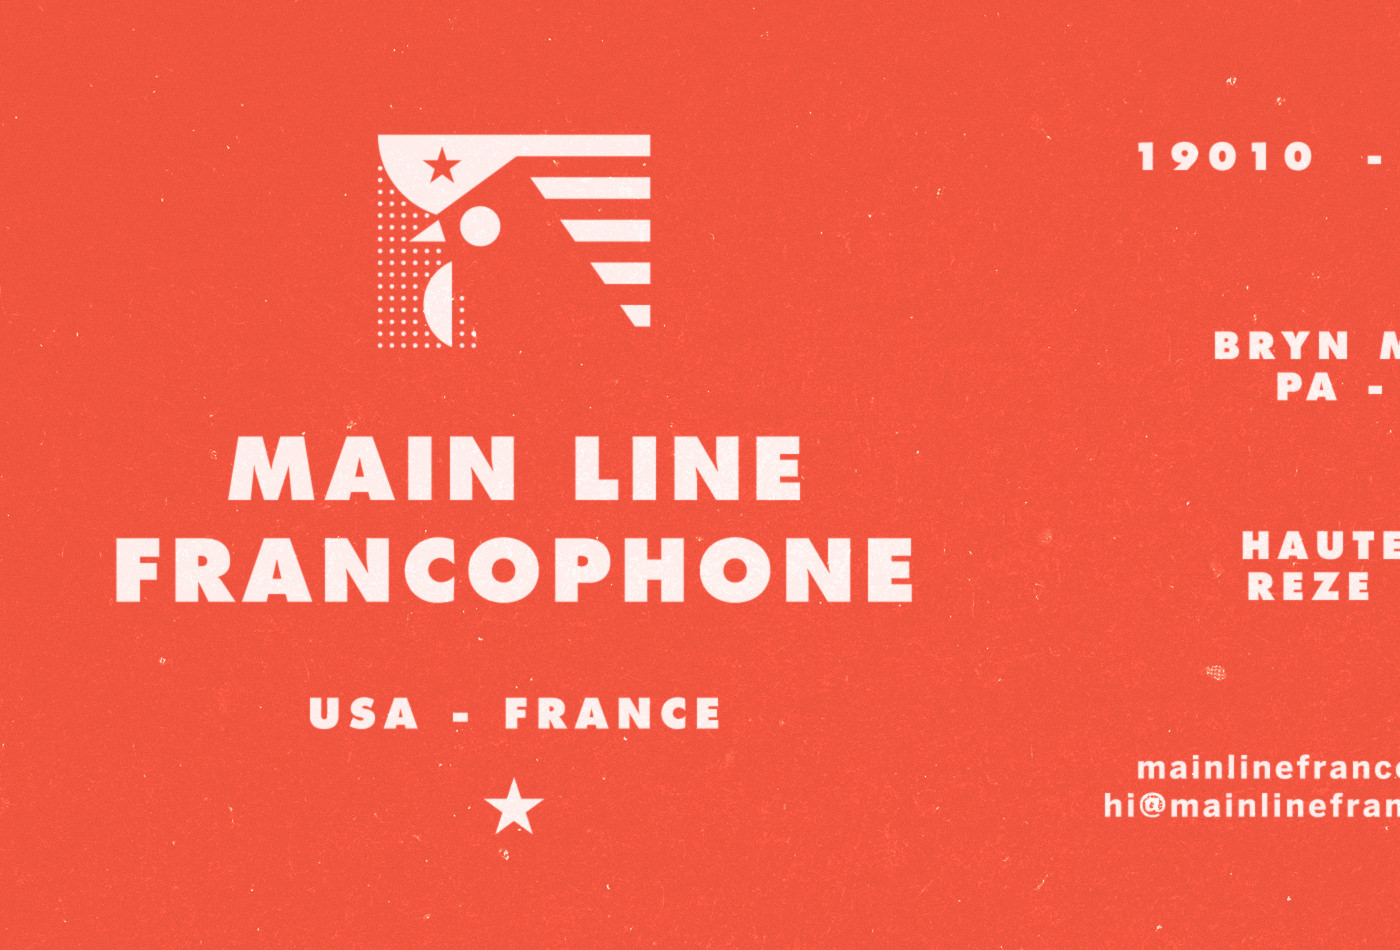 mainlinefrancophone-m_f-rooster-nantes-philadelphia-france-usa-branding-visual-identity-vacaliebres-graphicdesign